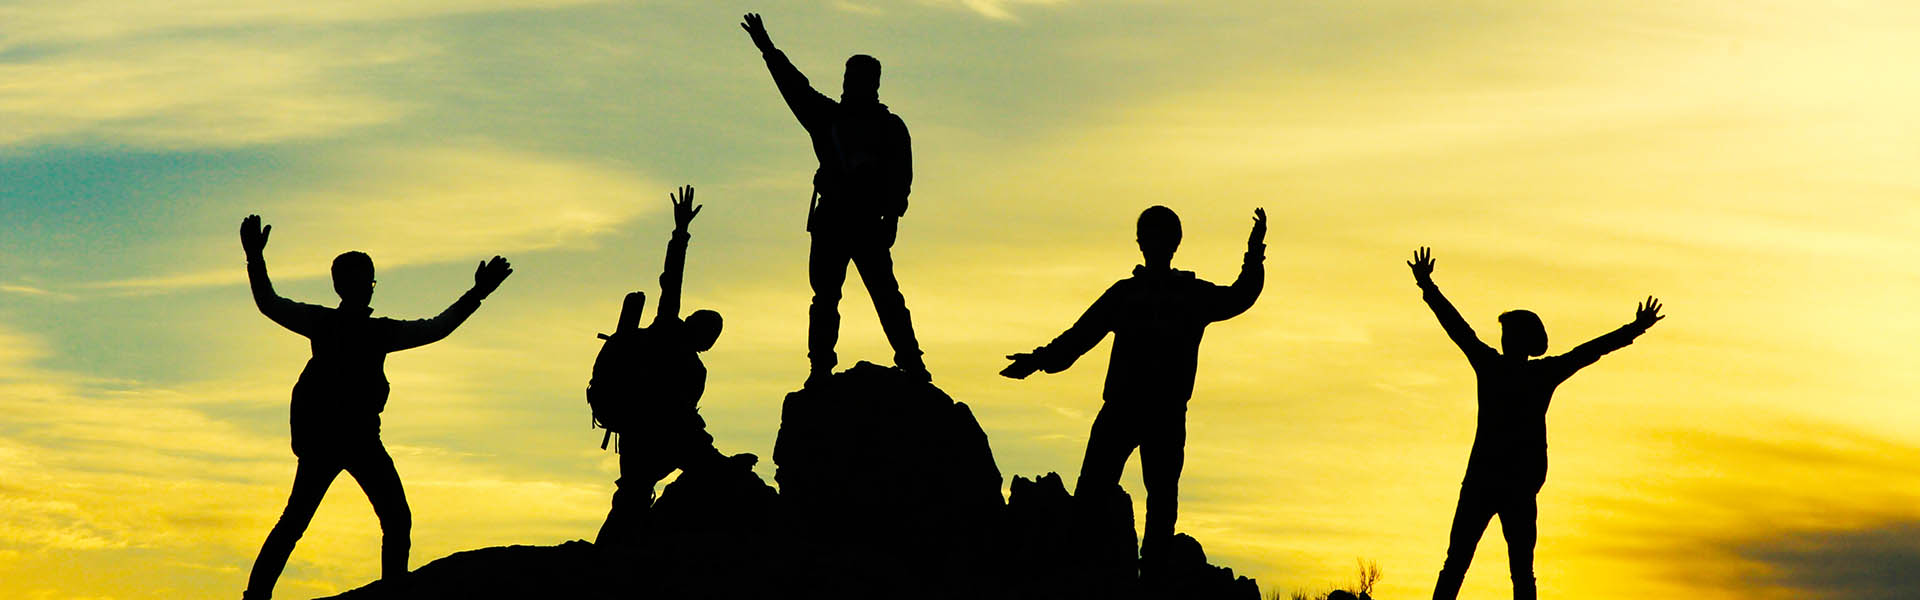 5 silhouettes on top of mountain